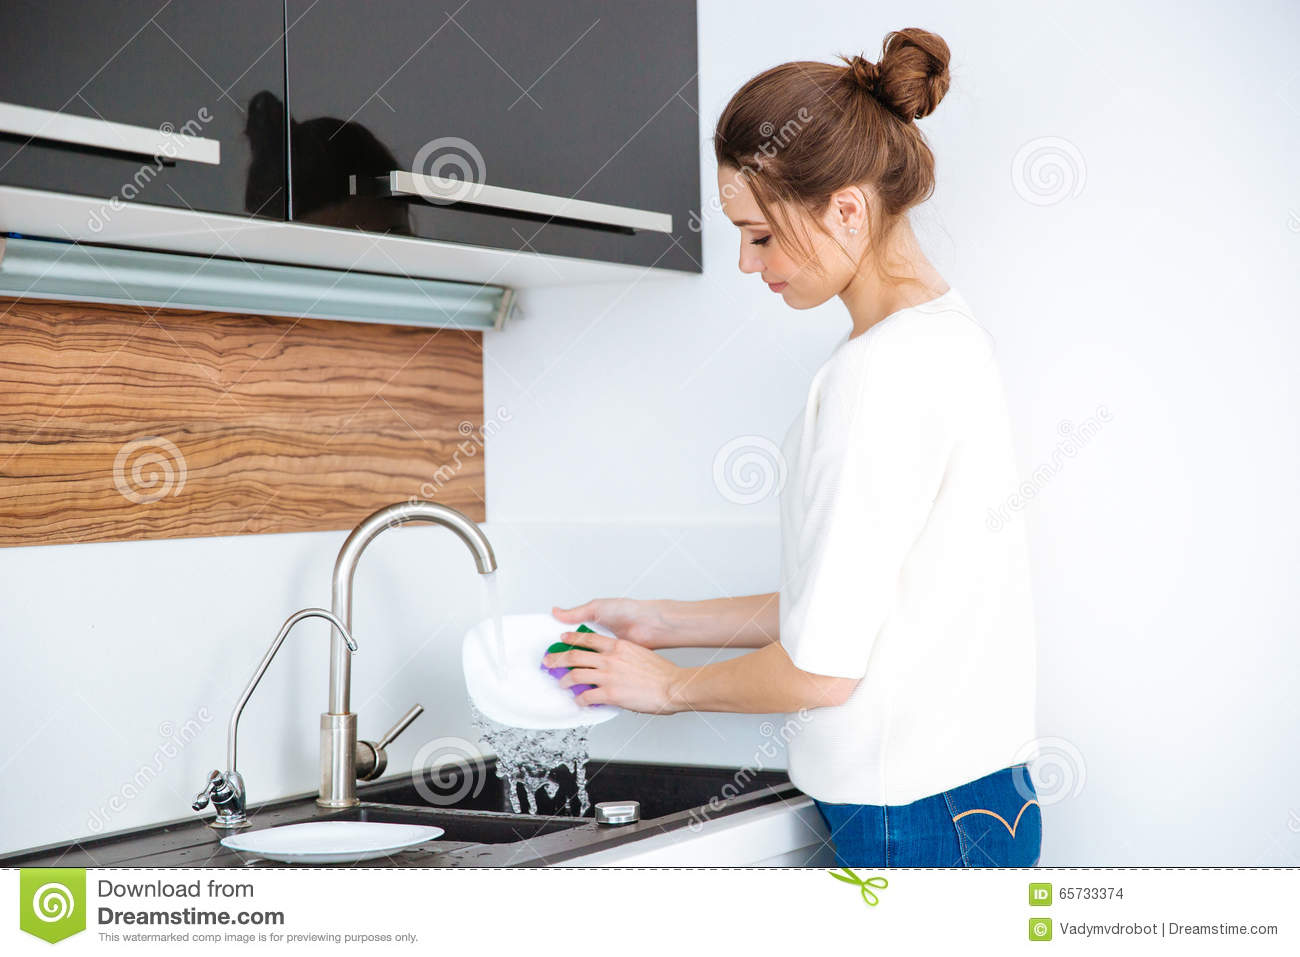 Cute lovely woman standing and washing dishes